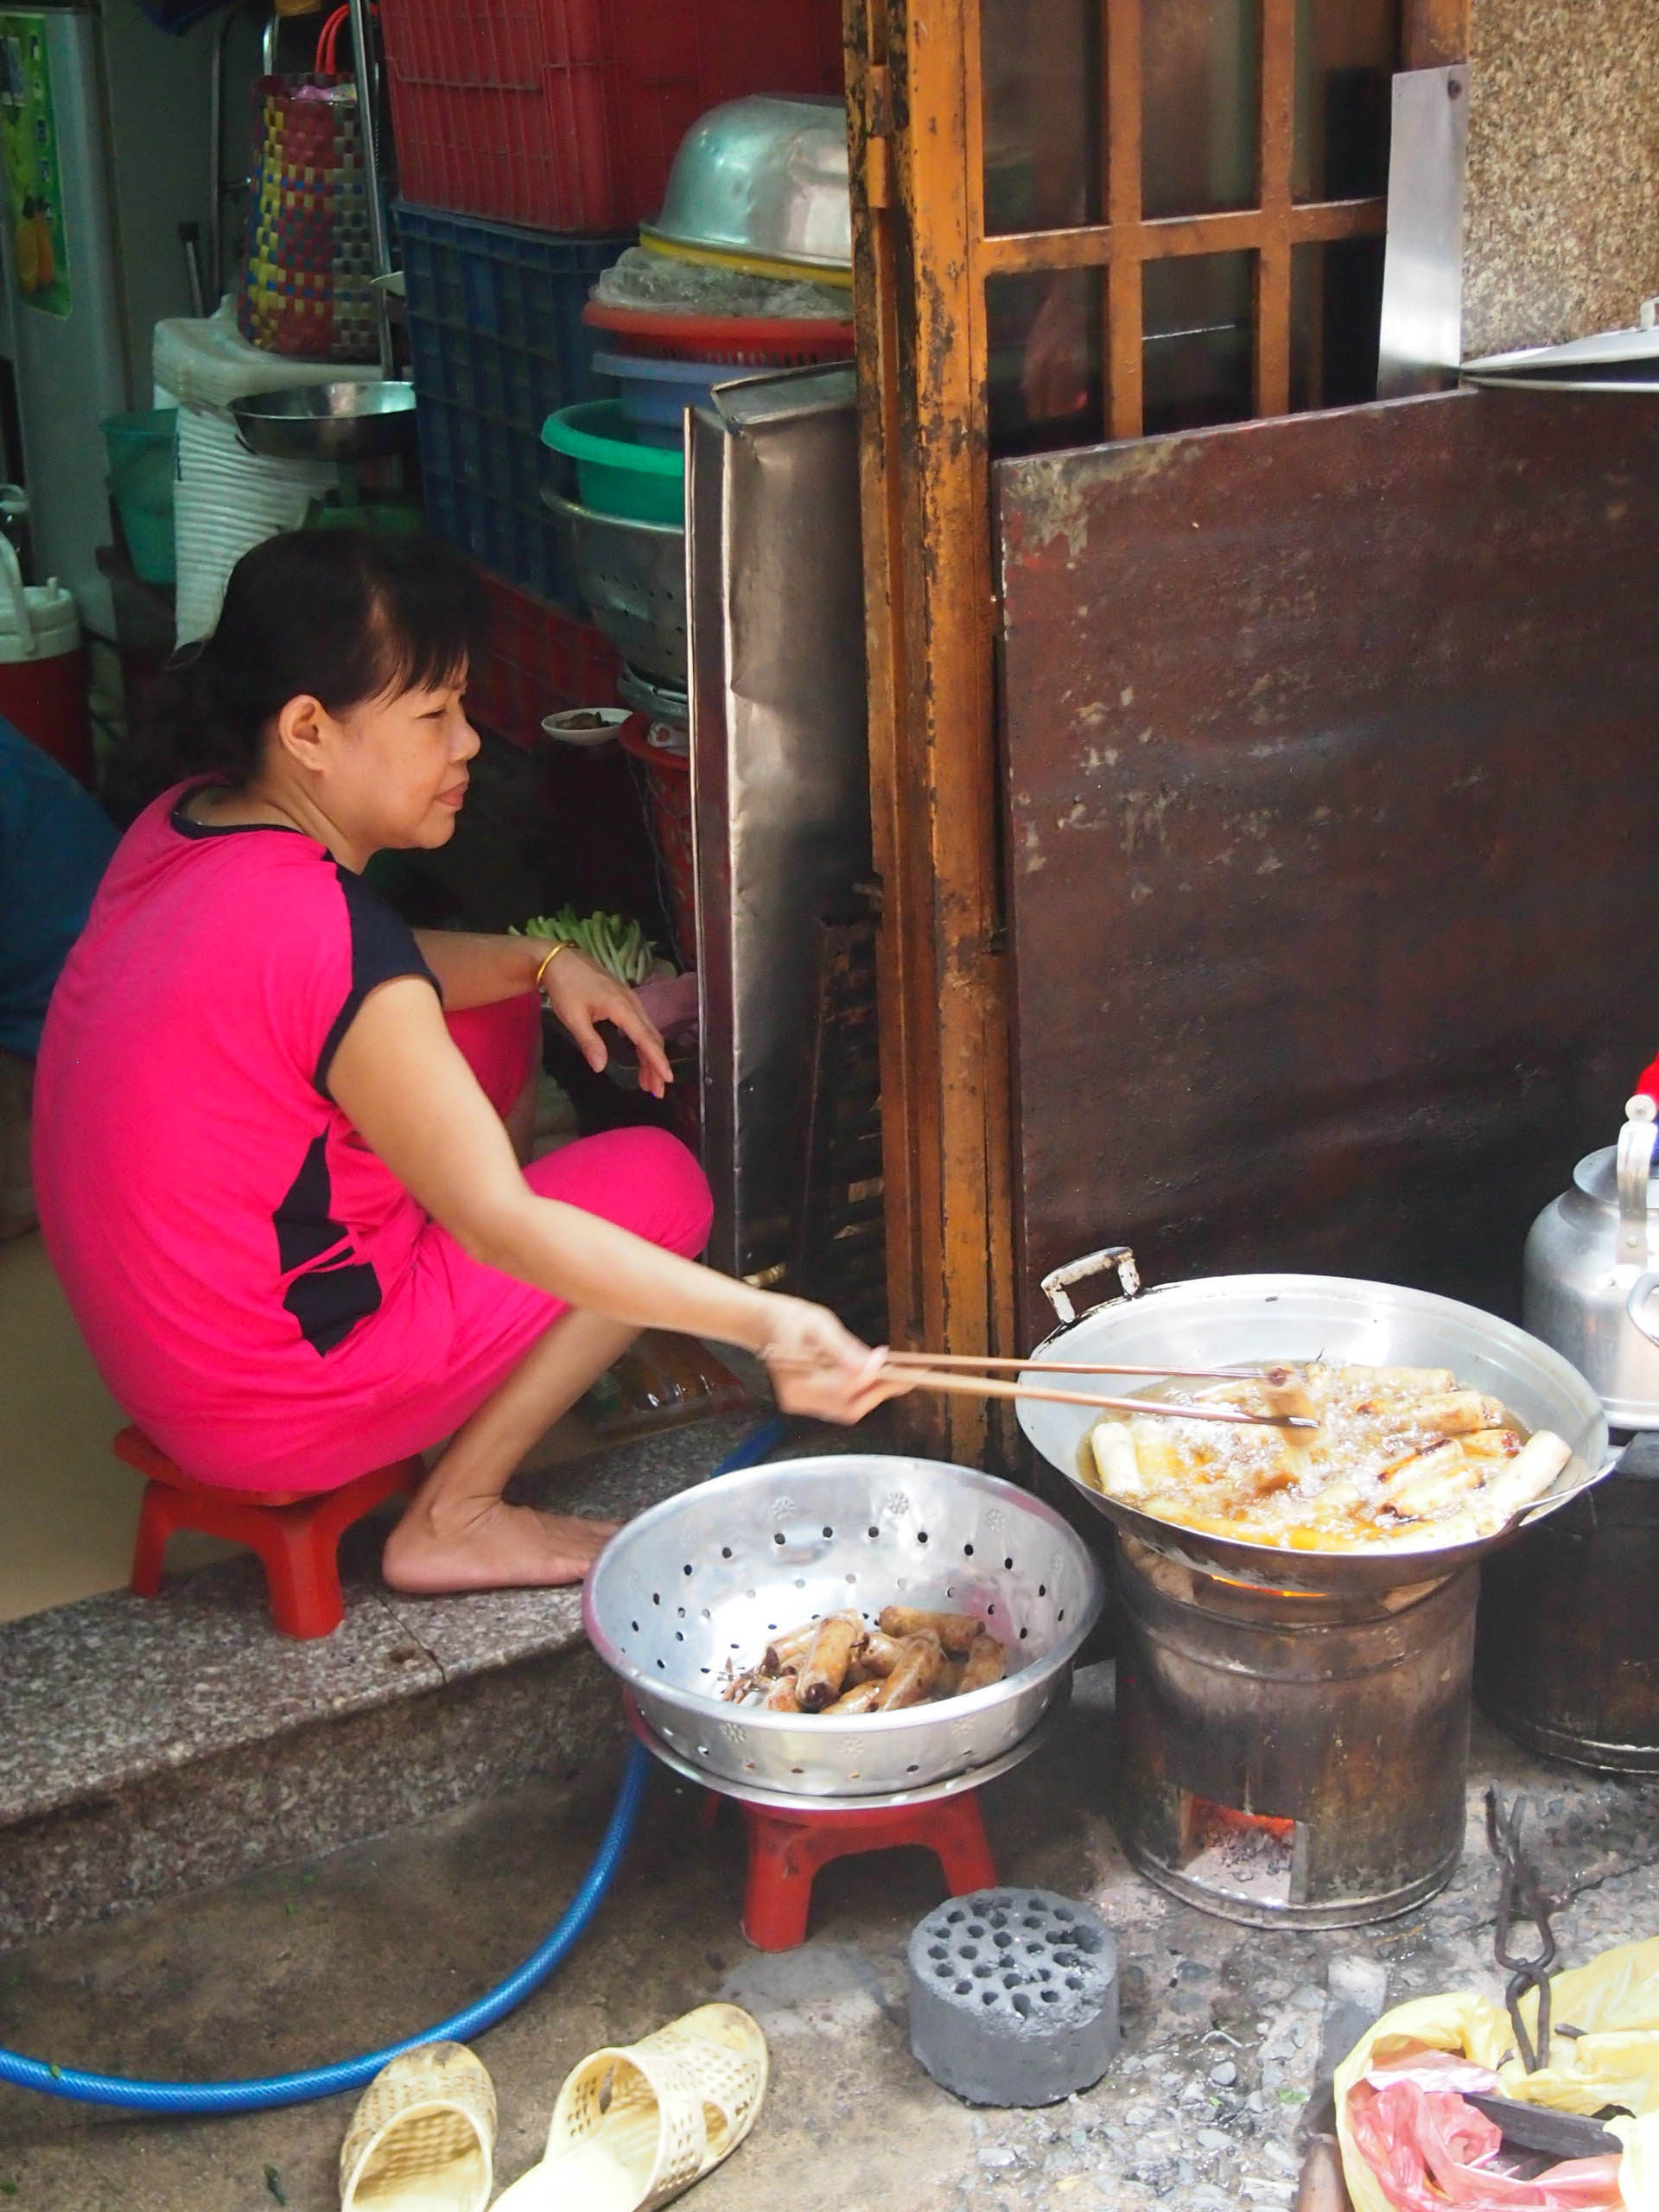 Exploring the alleyways in Ho Chi Minh City. The bottom floor of their home was kept open to do business, like this lady selling yummy fried things.